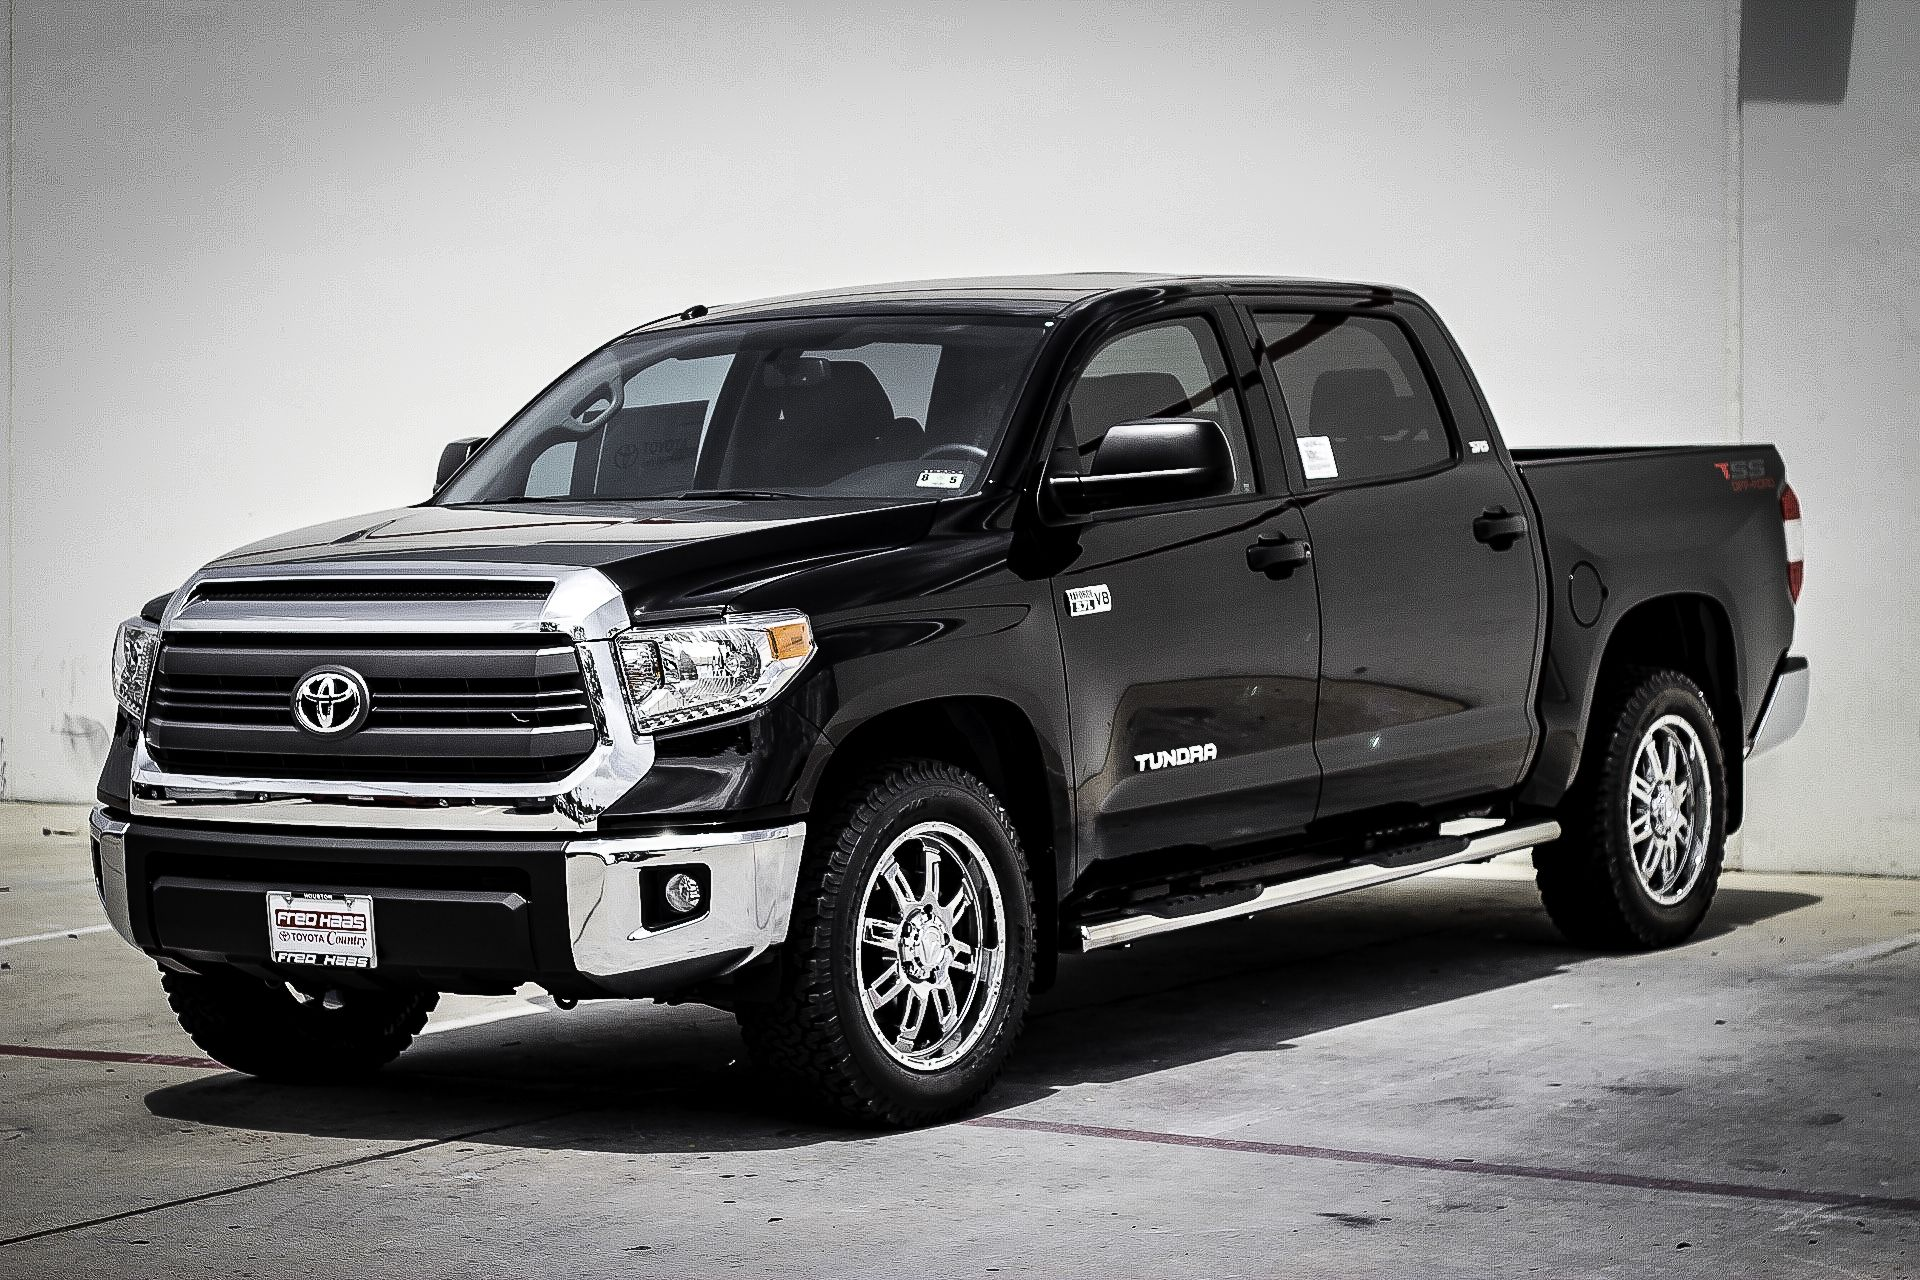 Our 1st 2014 Toyota Tundra is in! http